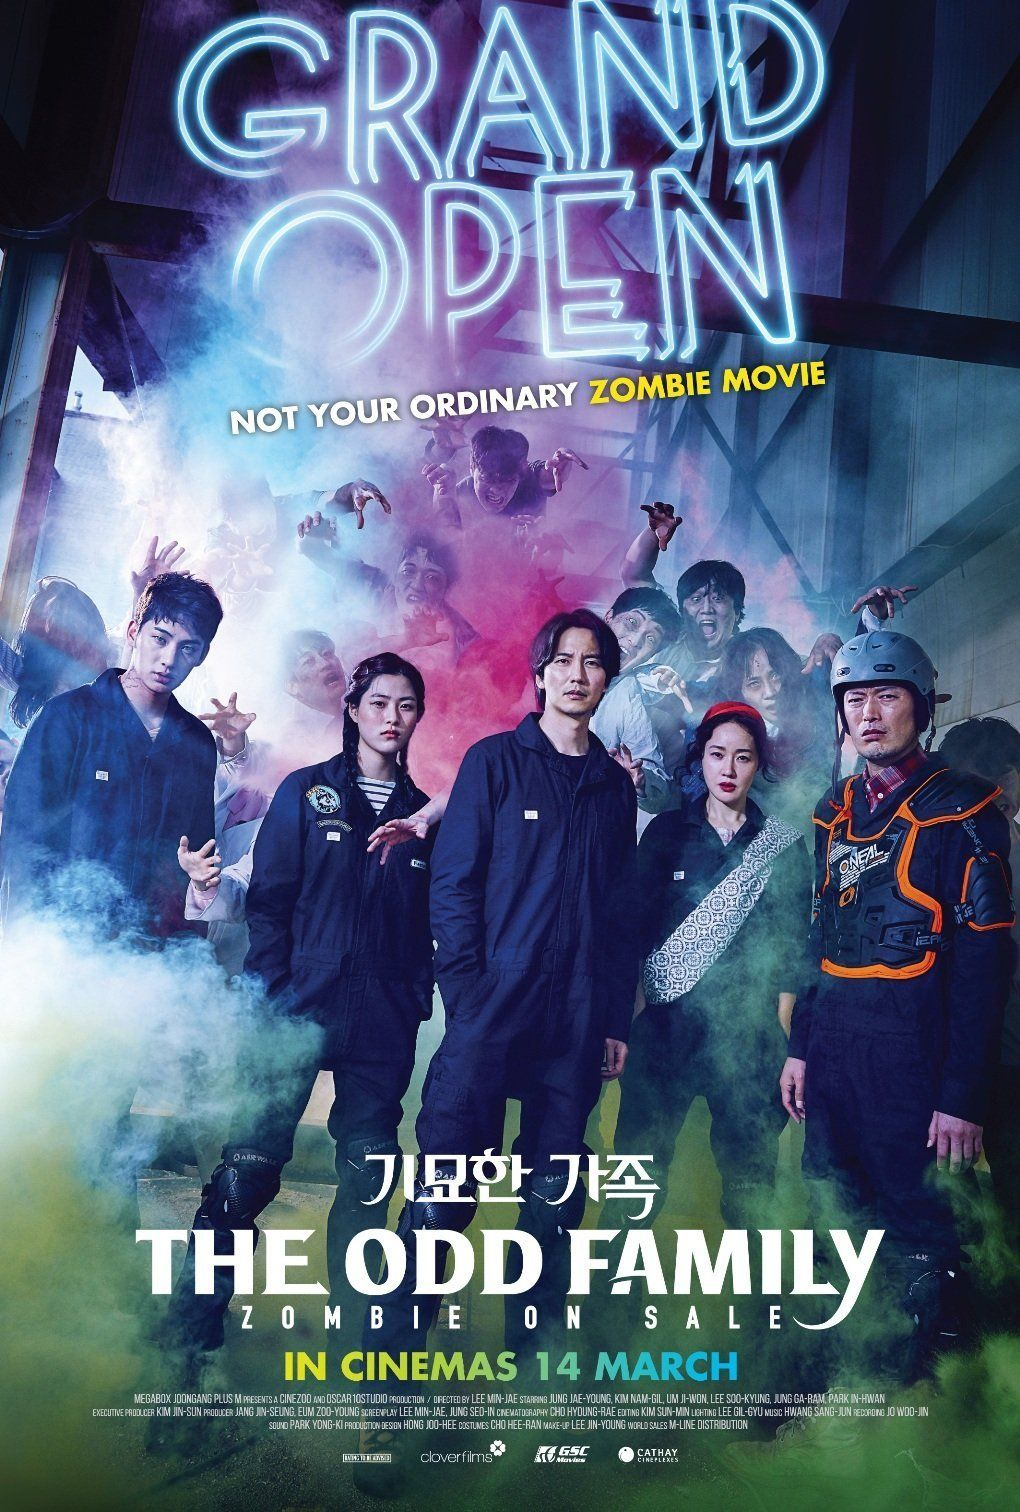 Image result for The Odd Family: Zombie on Sale poster